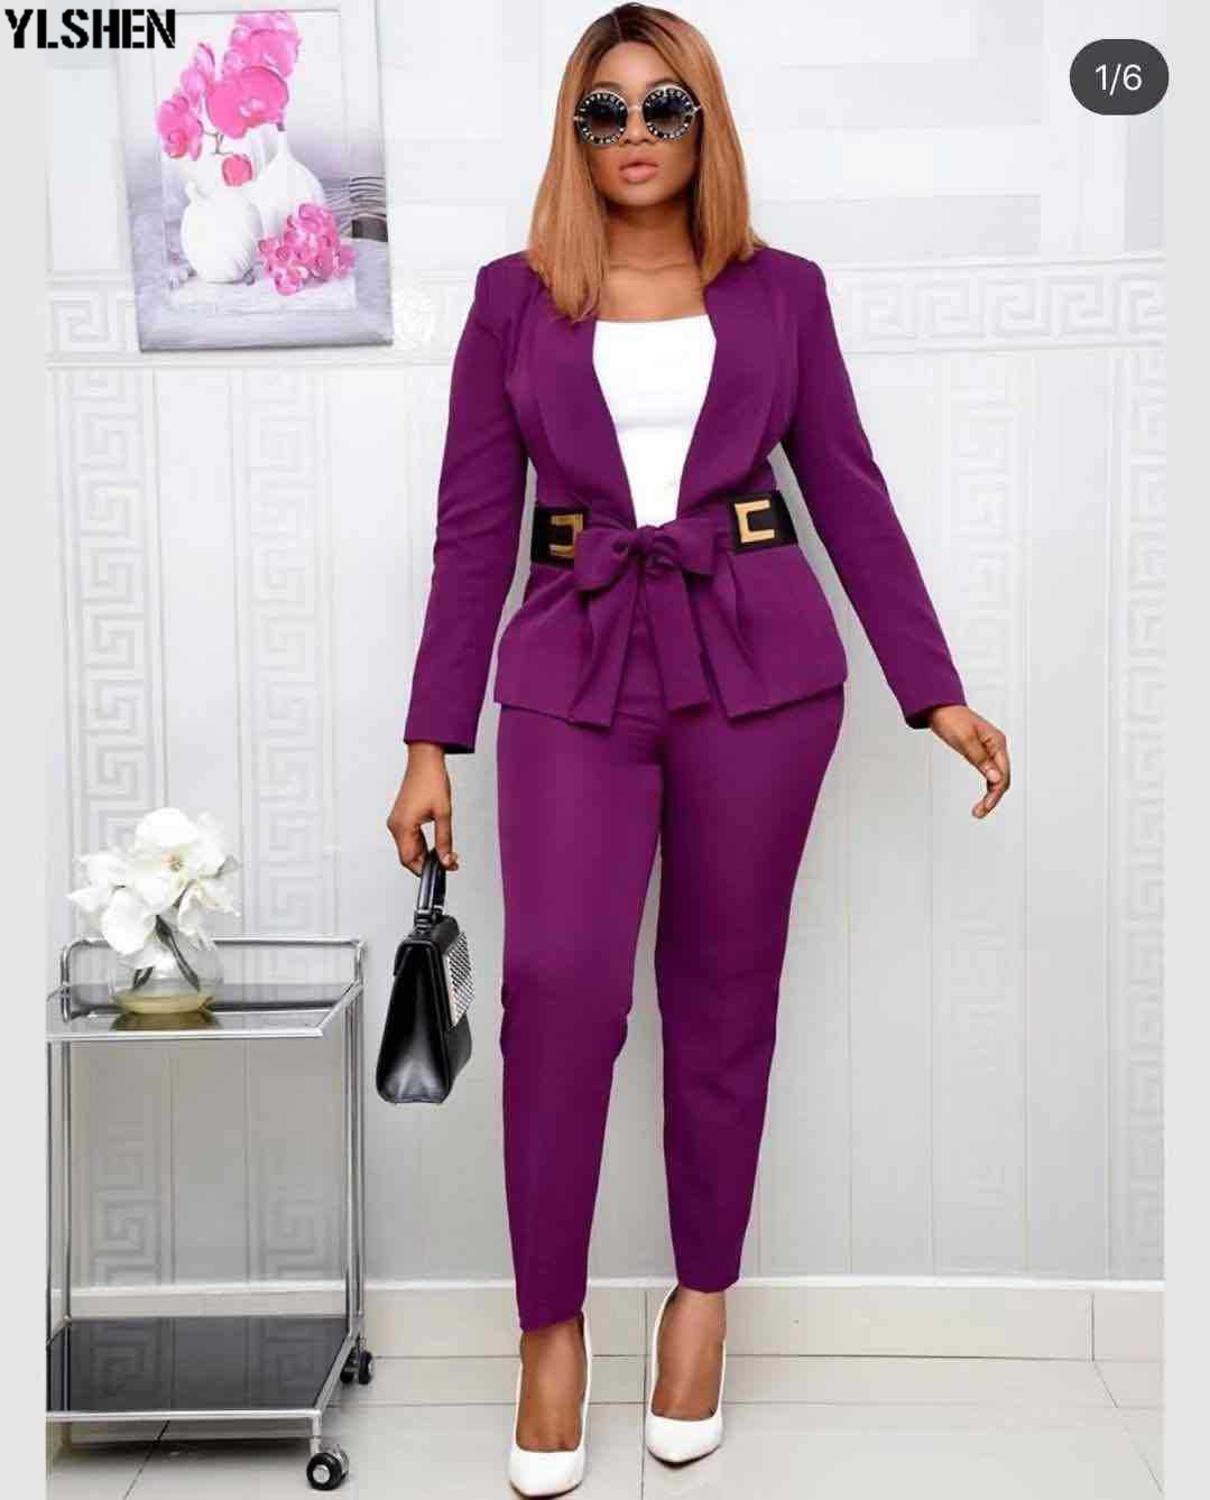 2 Two Piece Set Women Tracksuit Style Festival Clothing African Clothes Plus Size Outfits Tops +Pants Sweat Suit Matching Sets